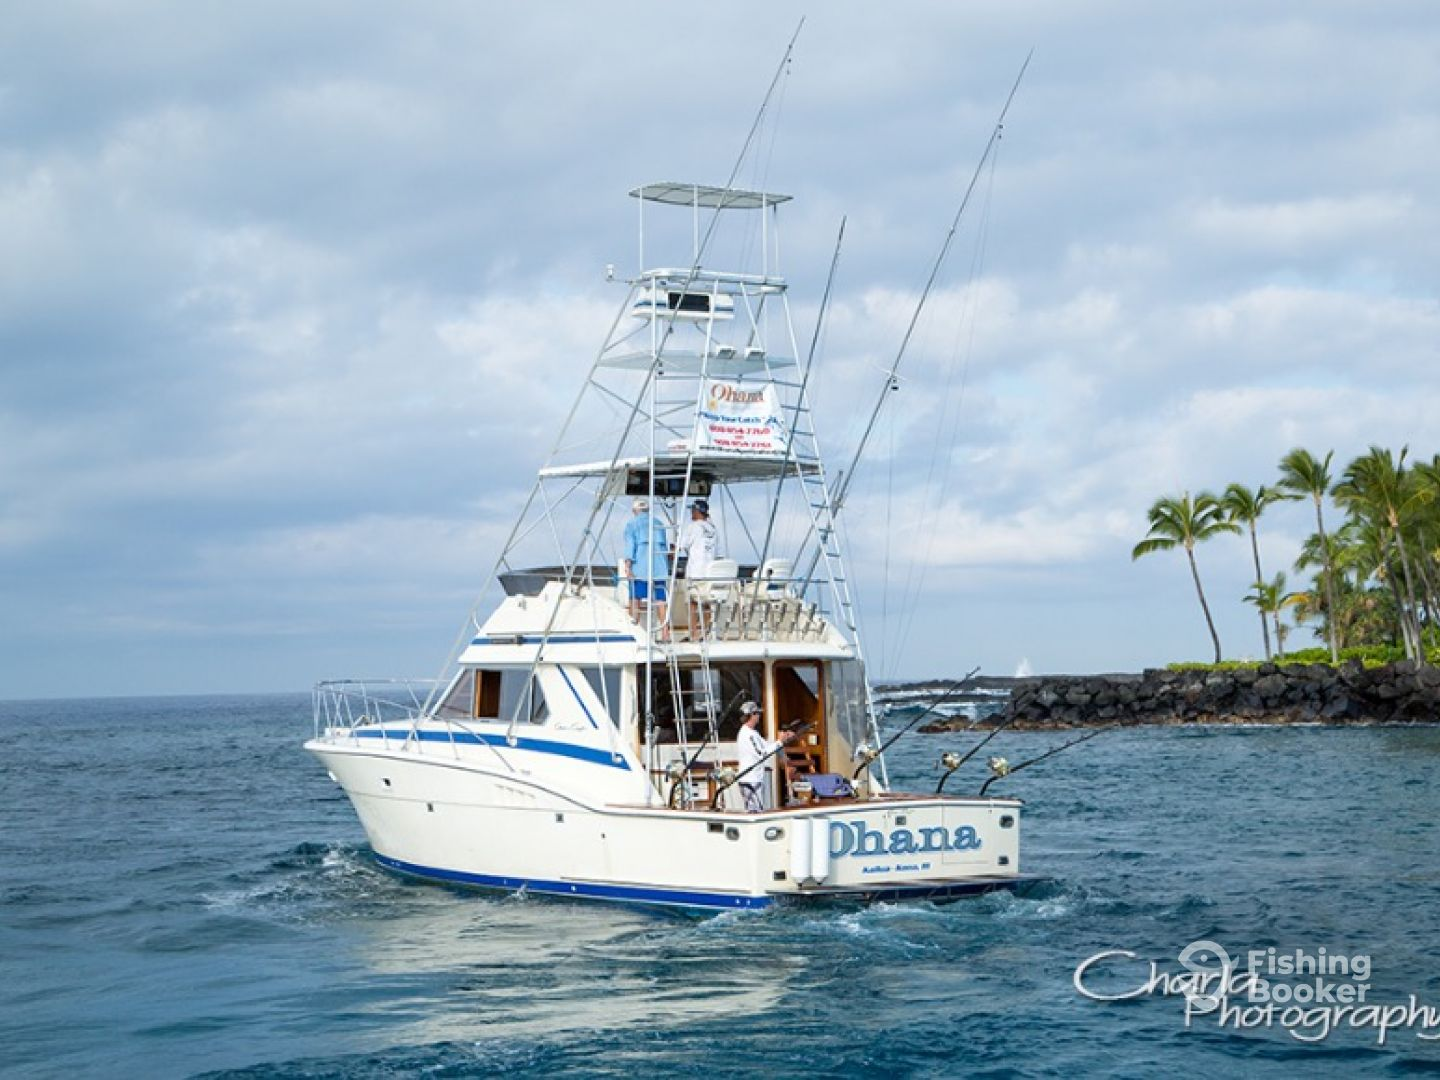 Ohana sportfishing adventures kailua kona hi for Kona fishing charters